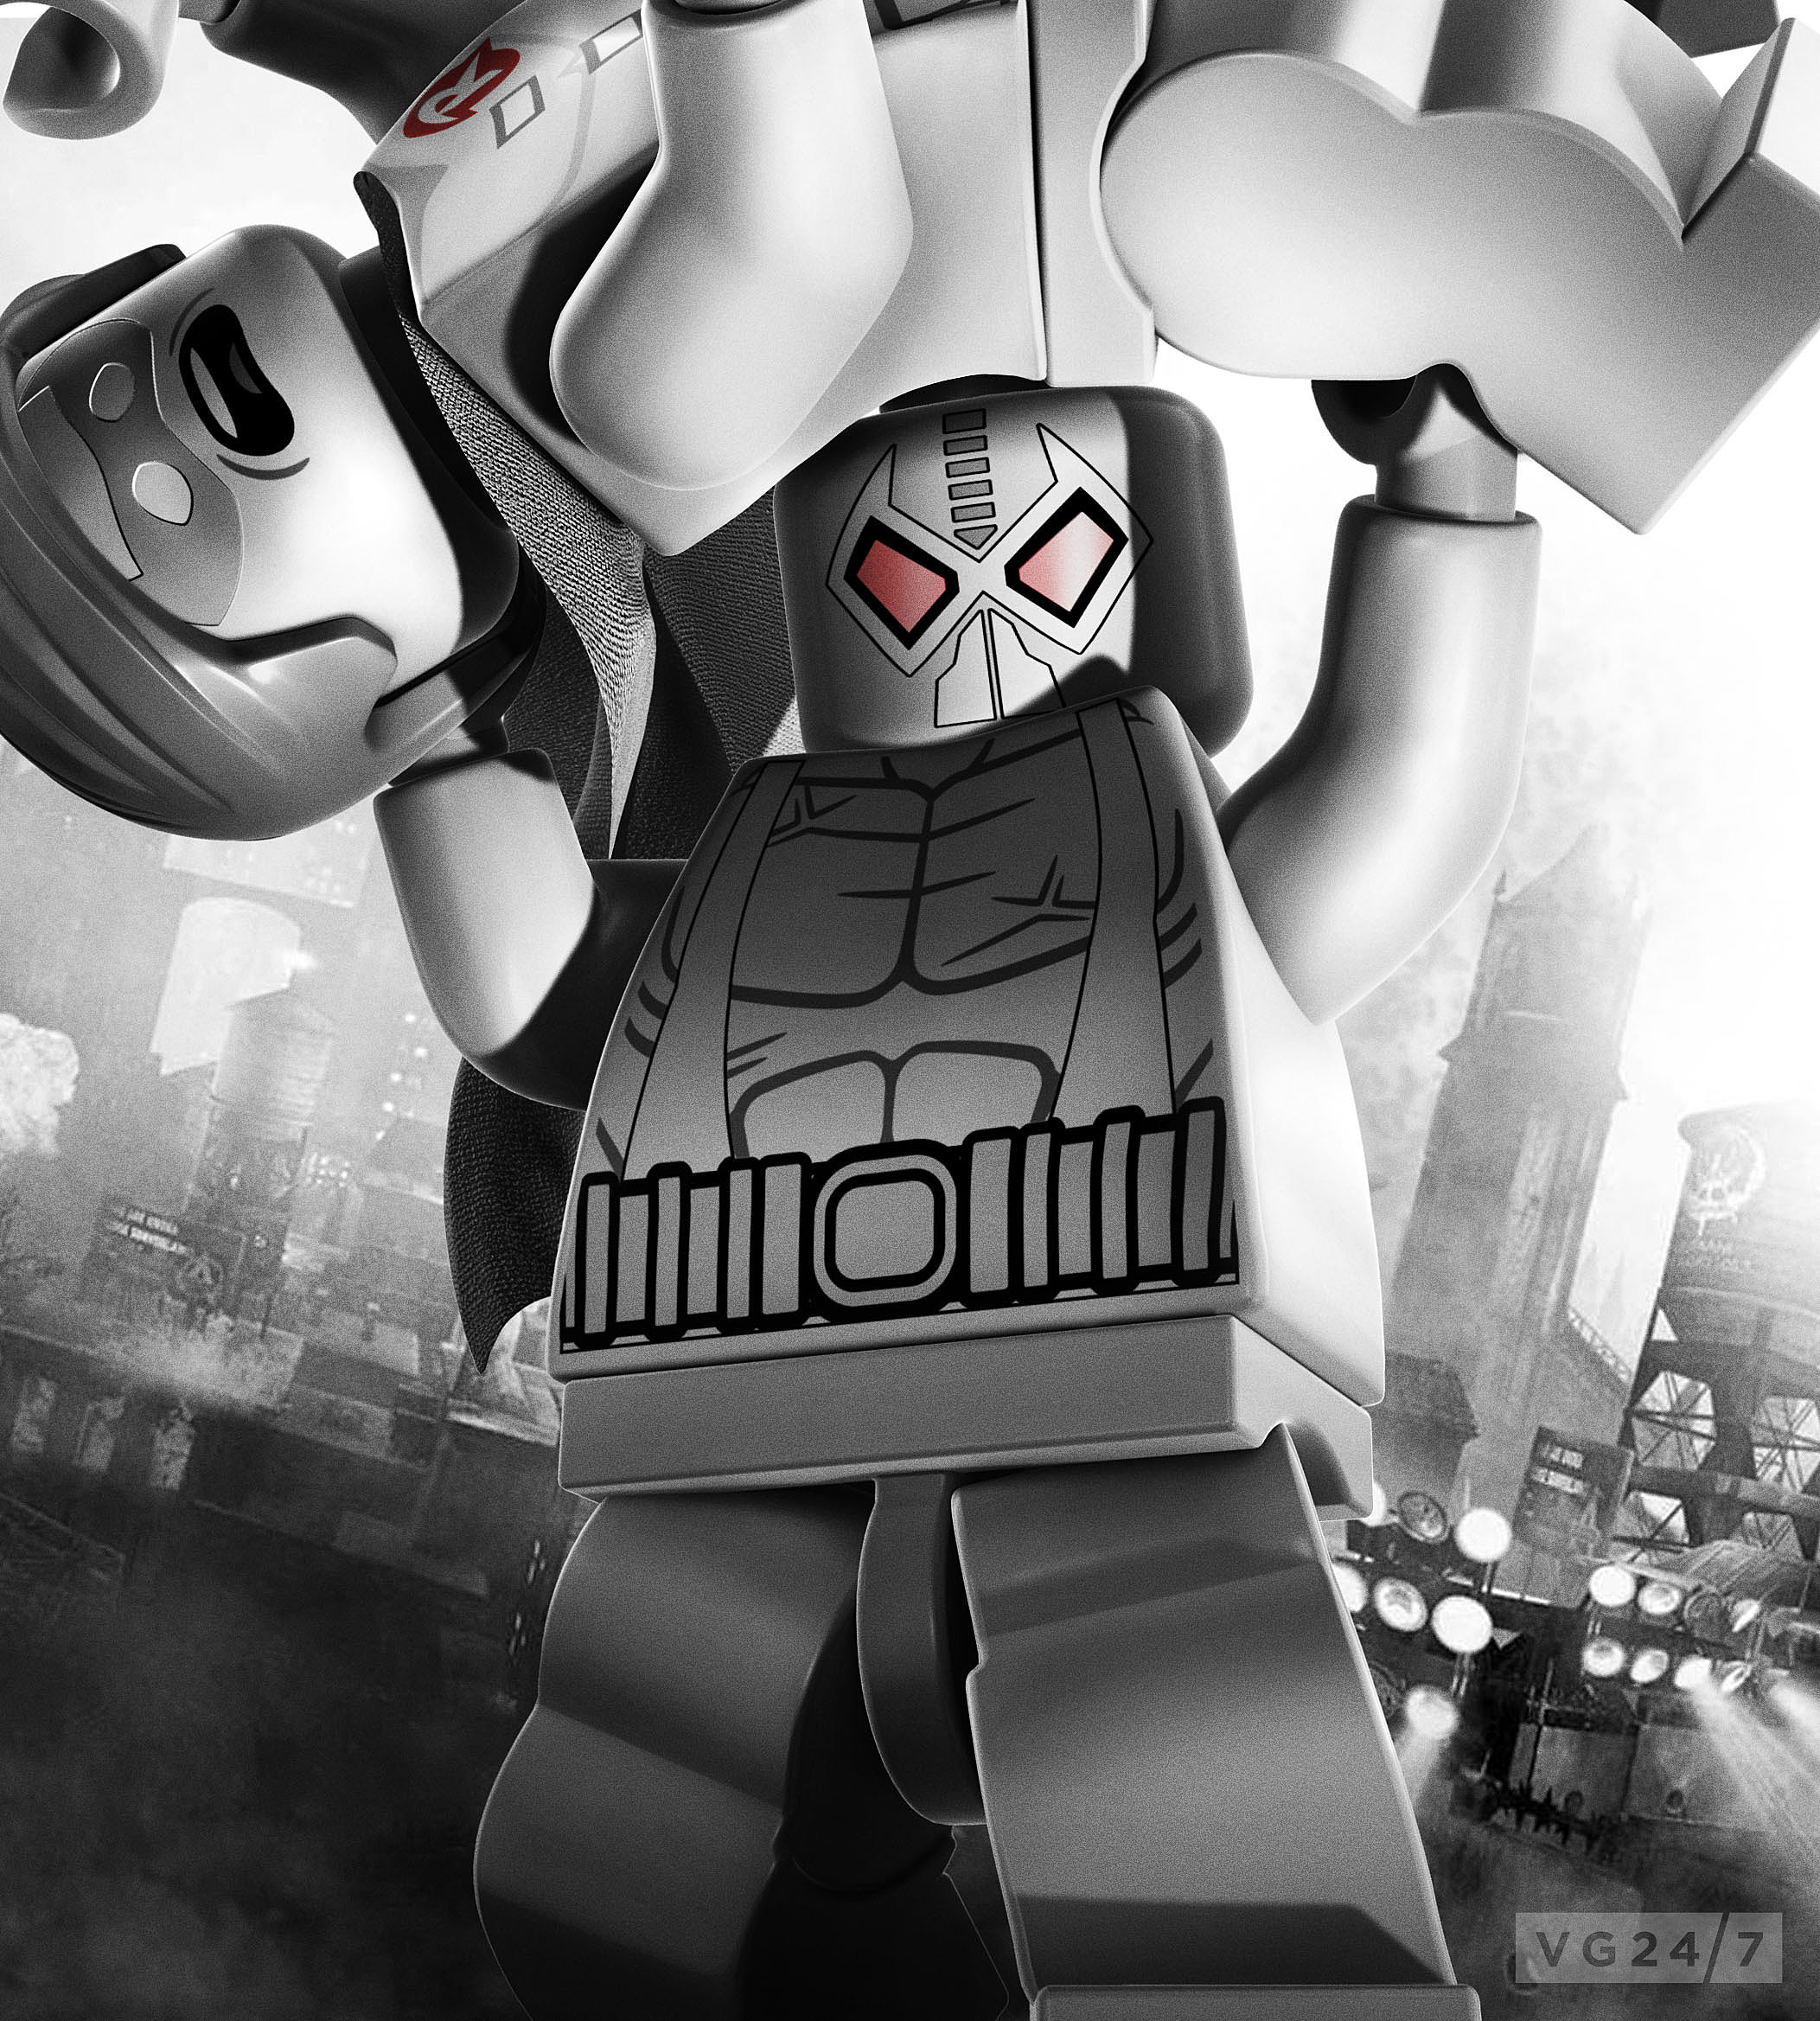 Lego batman 3 colouring pages page 2 - Lego Batman 2 Dc Super Heroes Teases Characters Arkham City Style